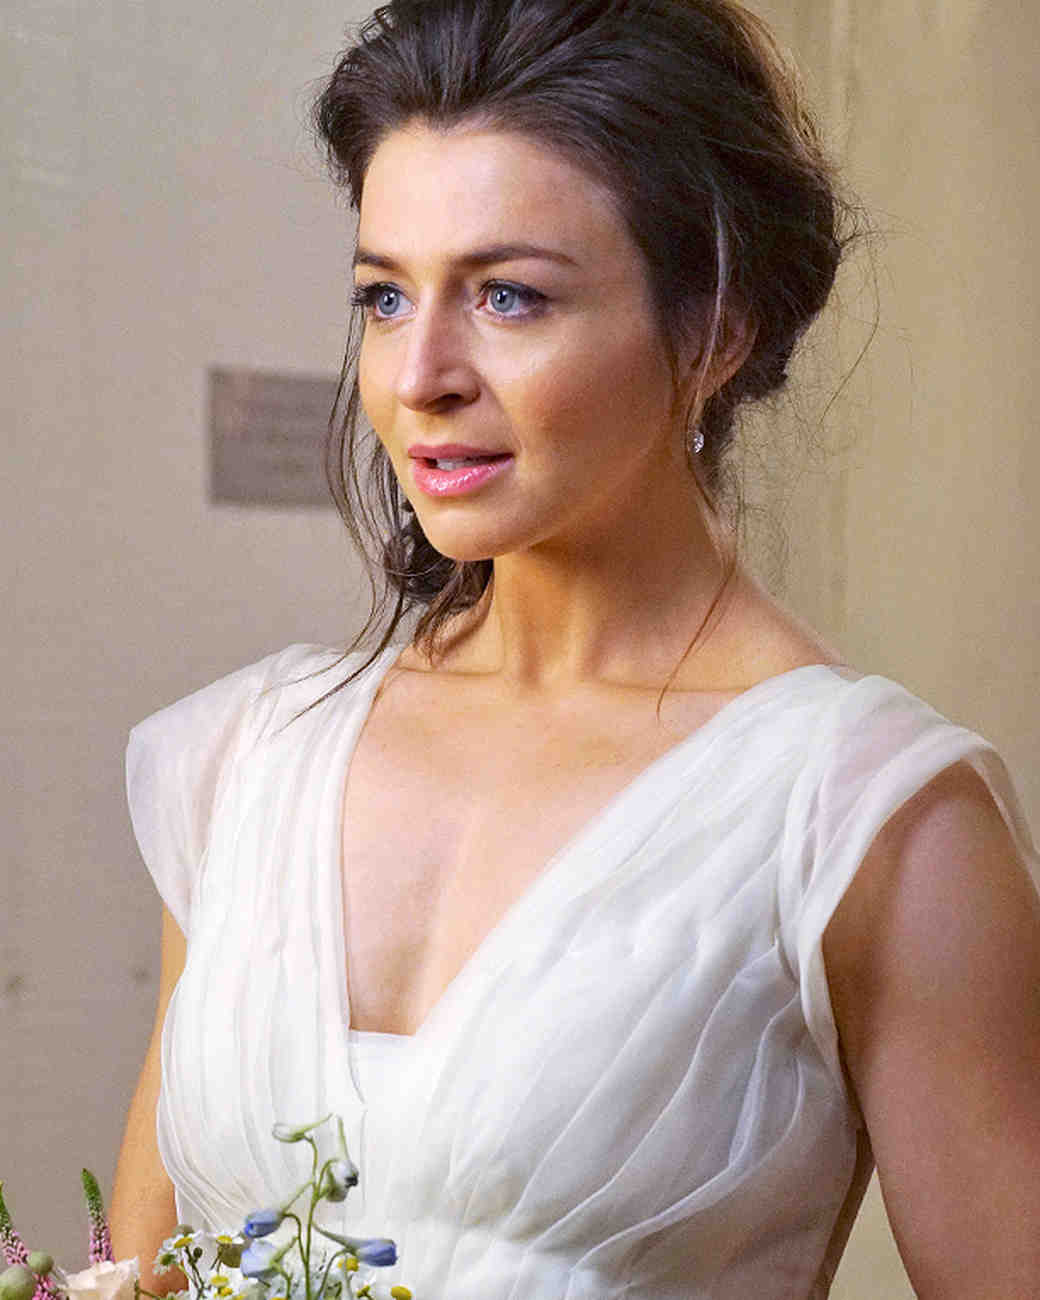 tv-wedding-dress-greys-anatomy-amelia-0516.jpg